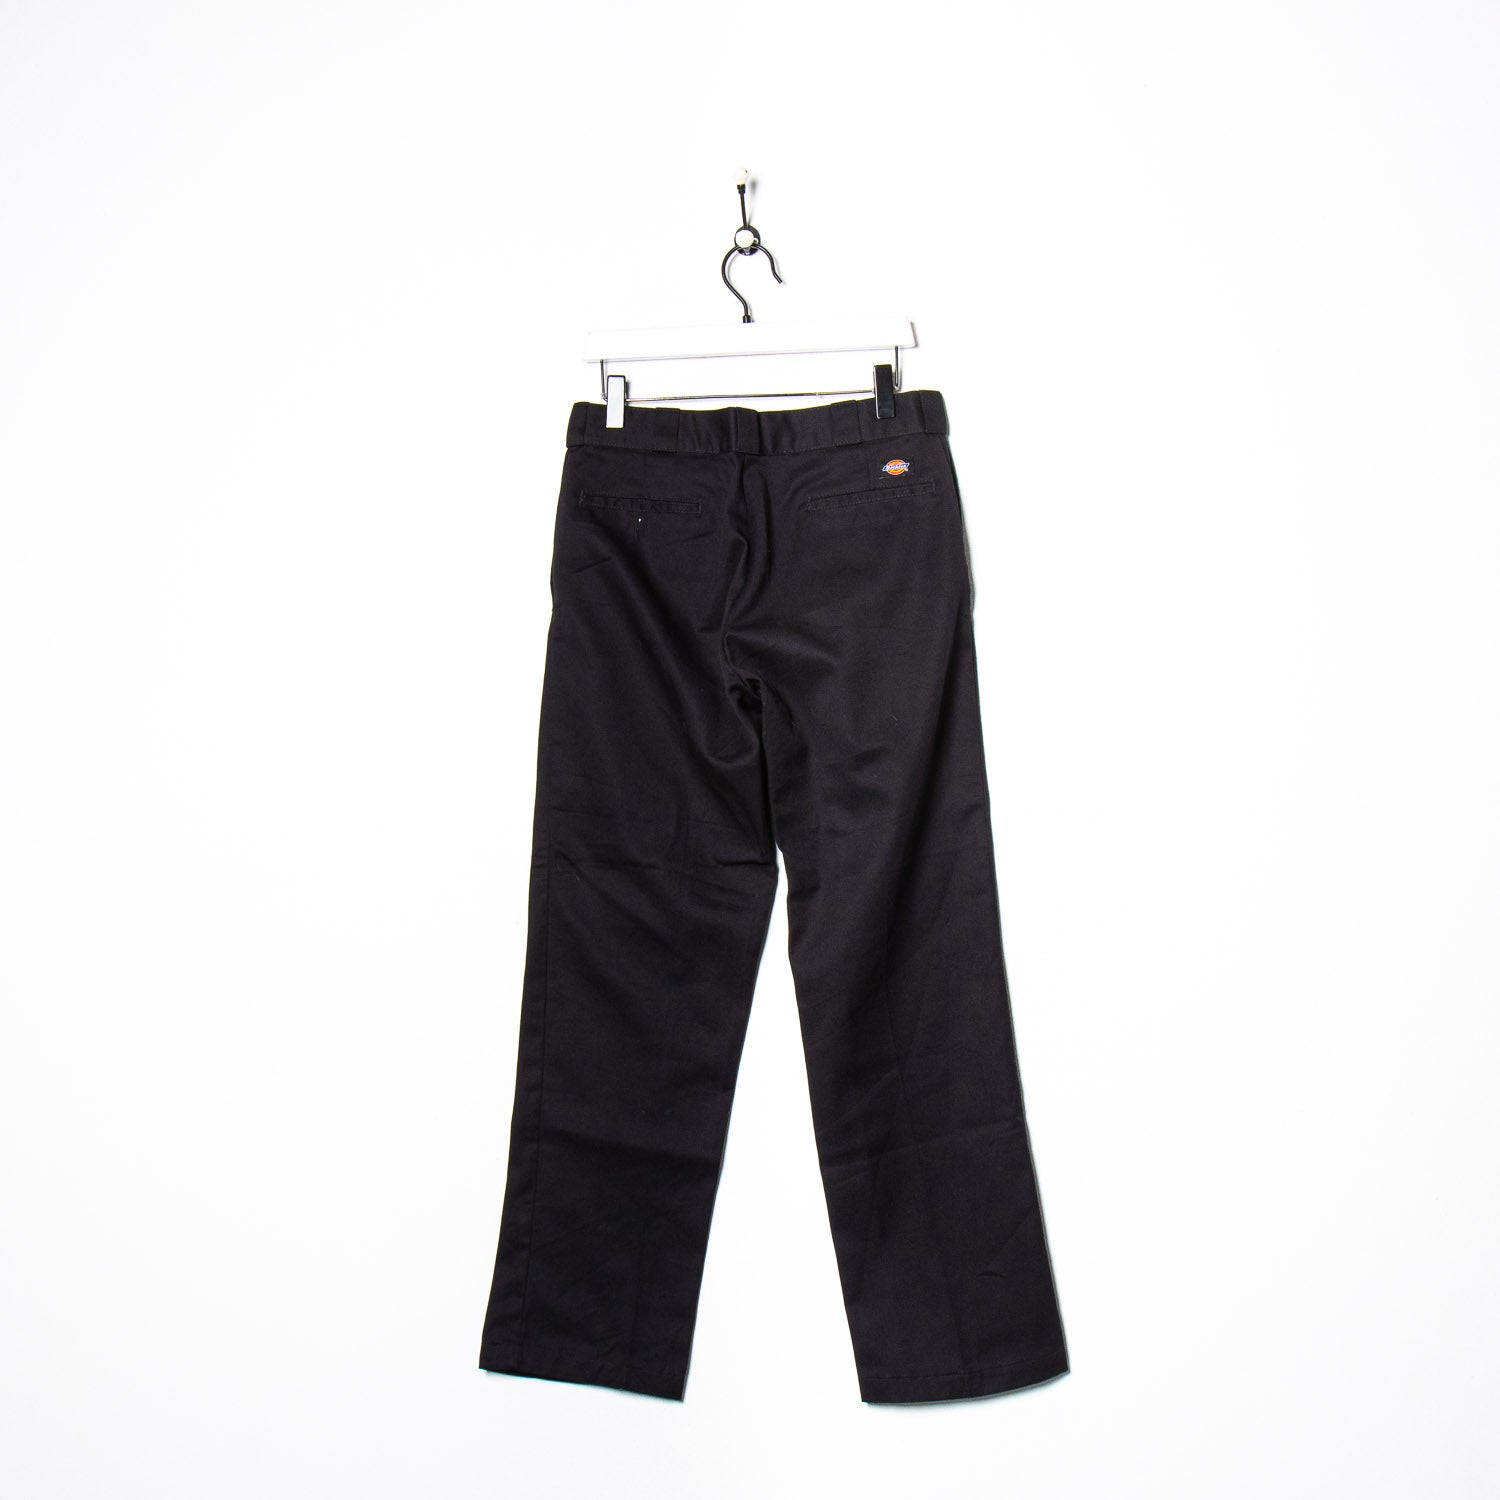 Kappa Zip Sweatshirt Grey Medium